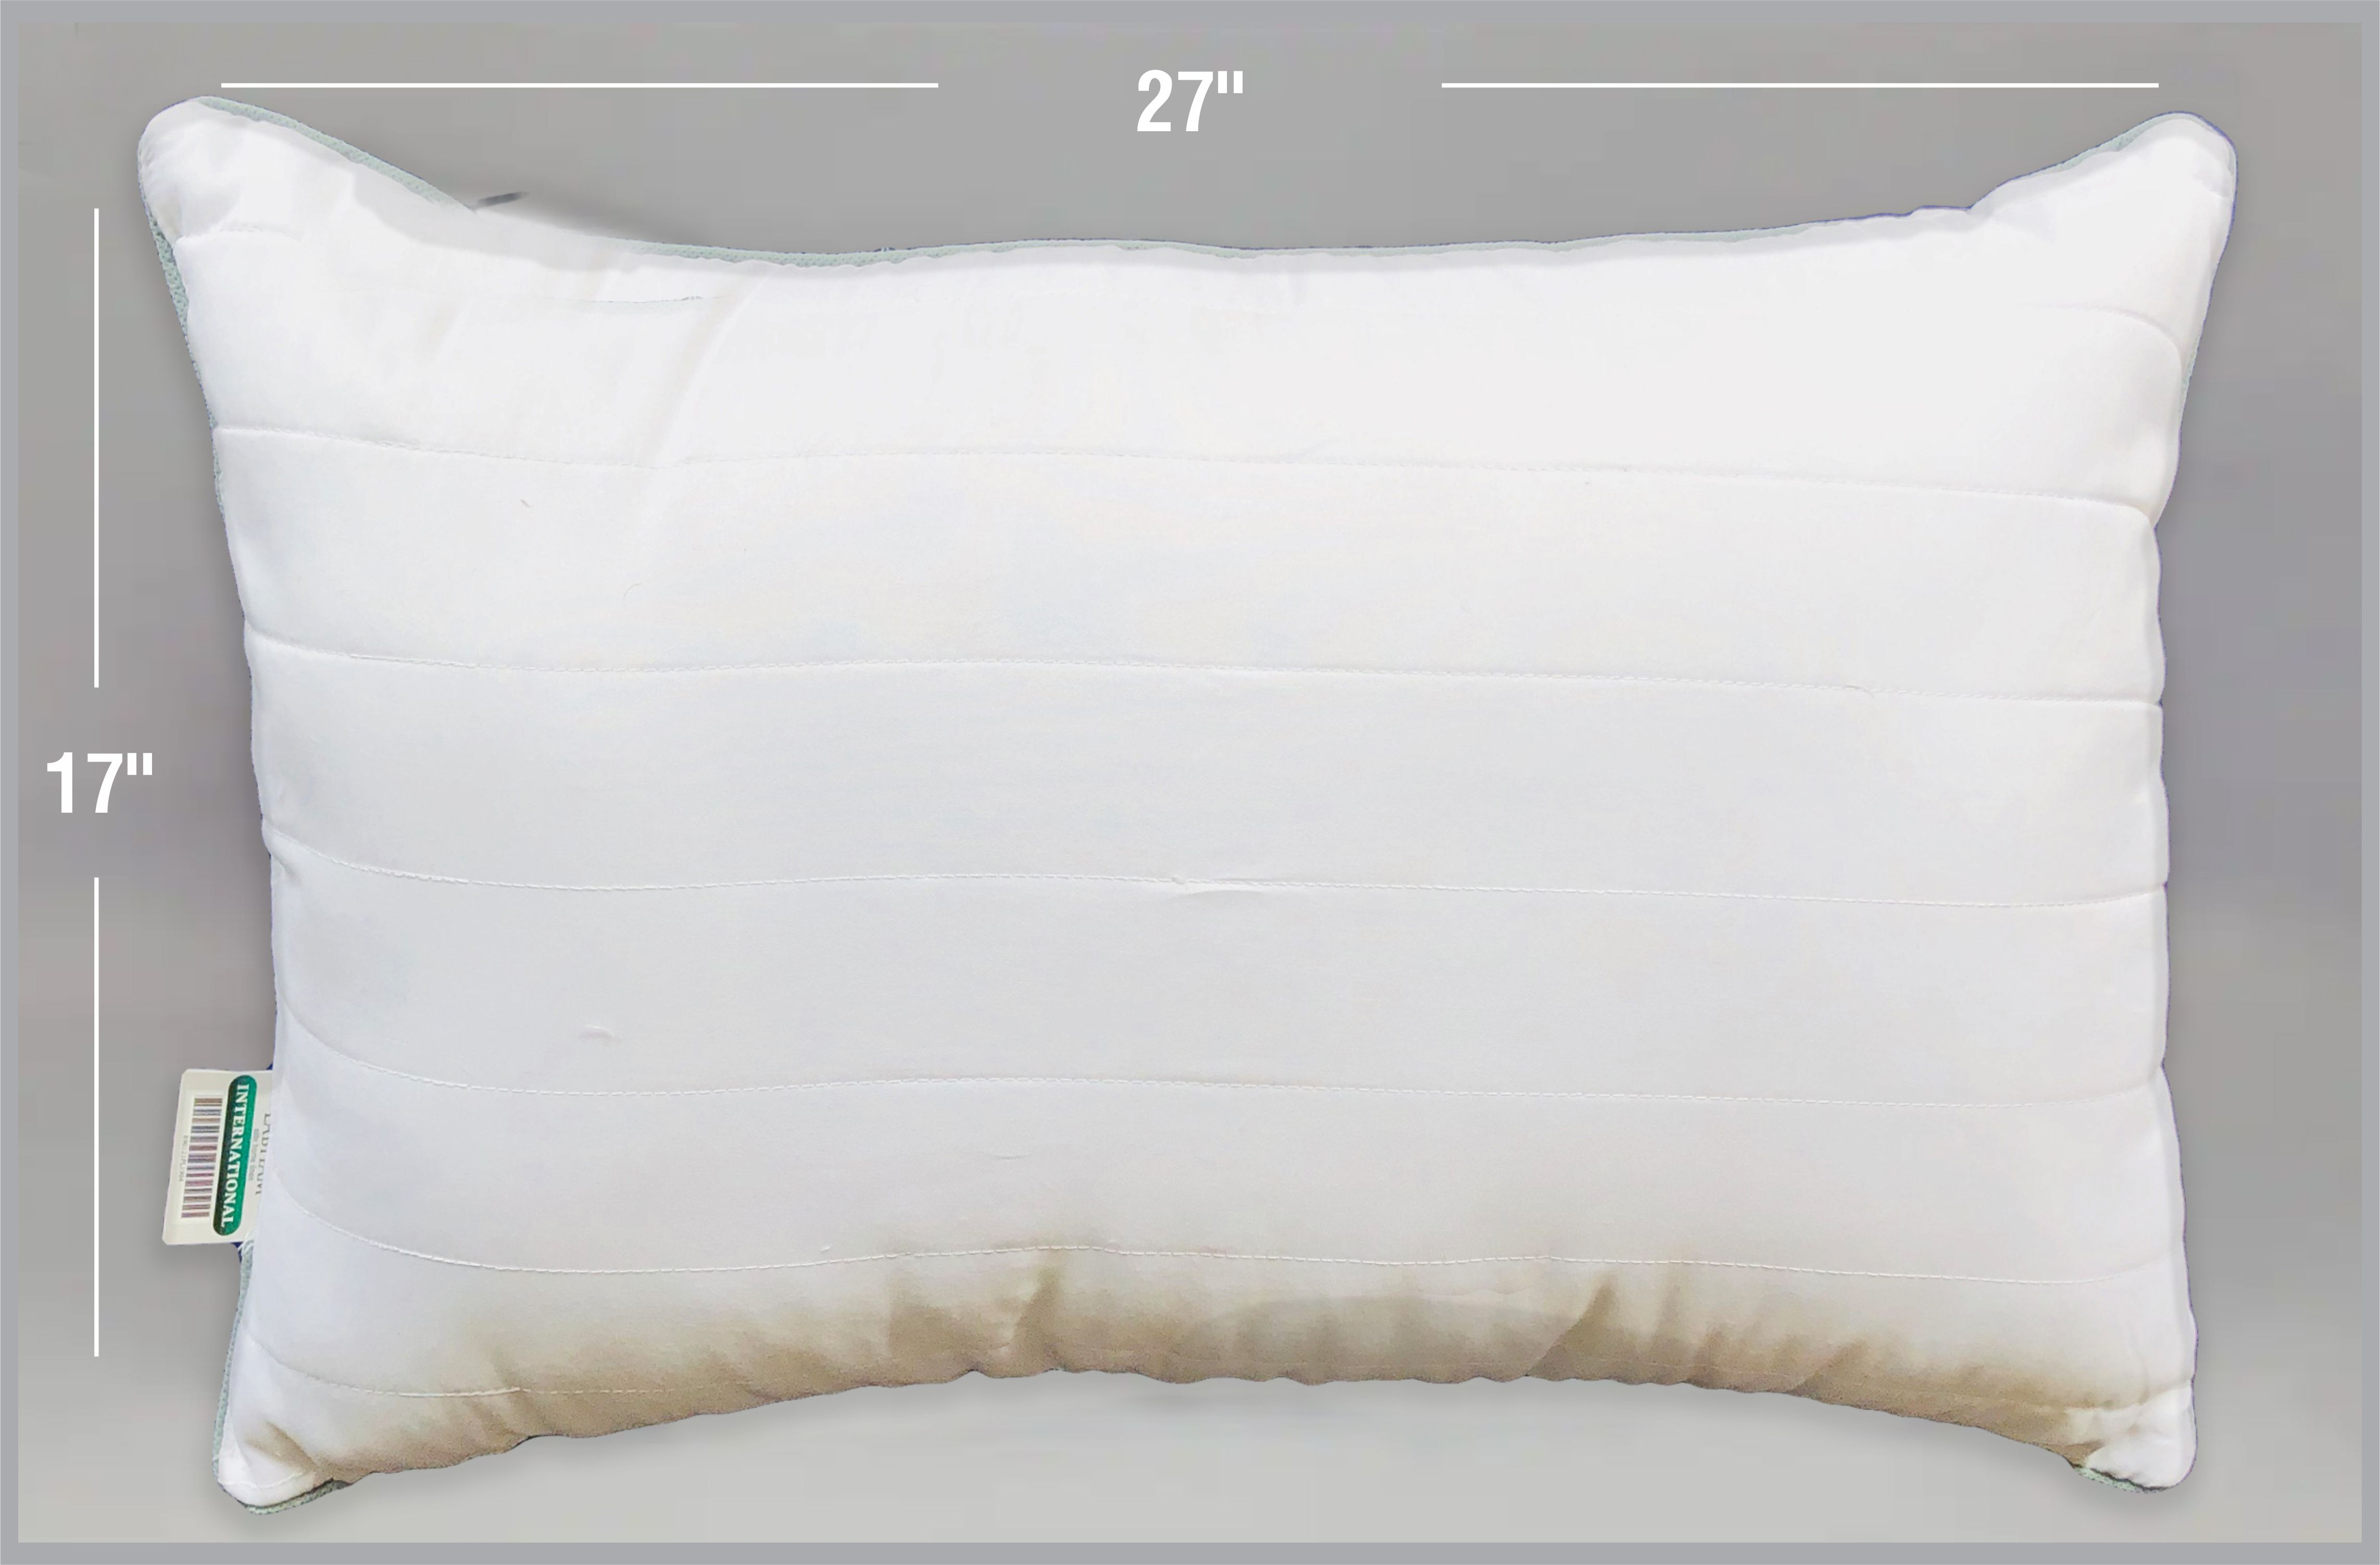 INTERNATIONAL QUILTED PILLOWS